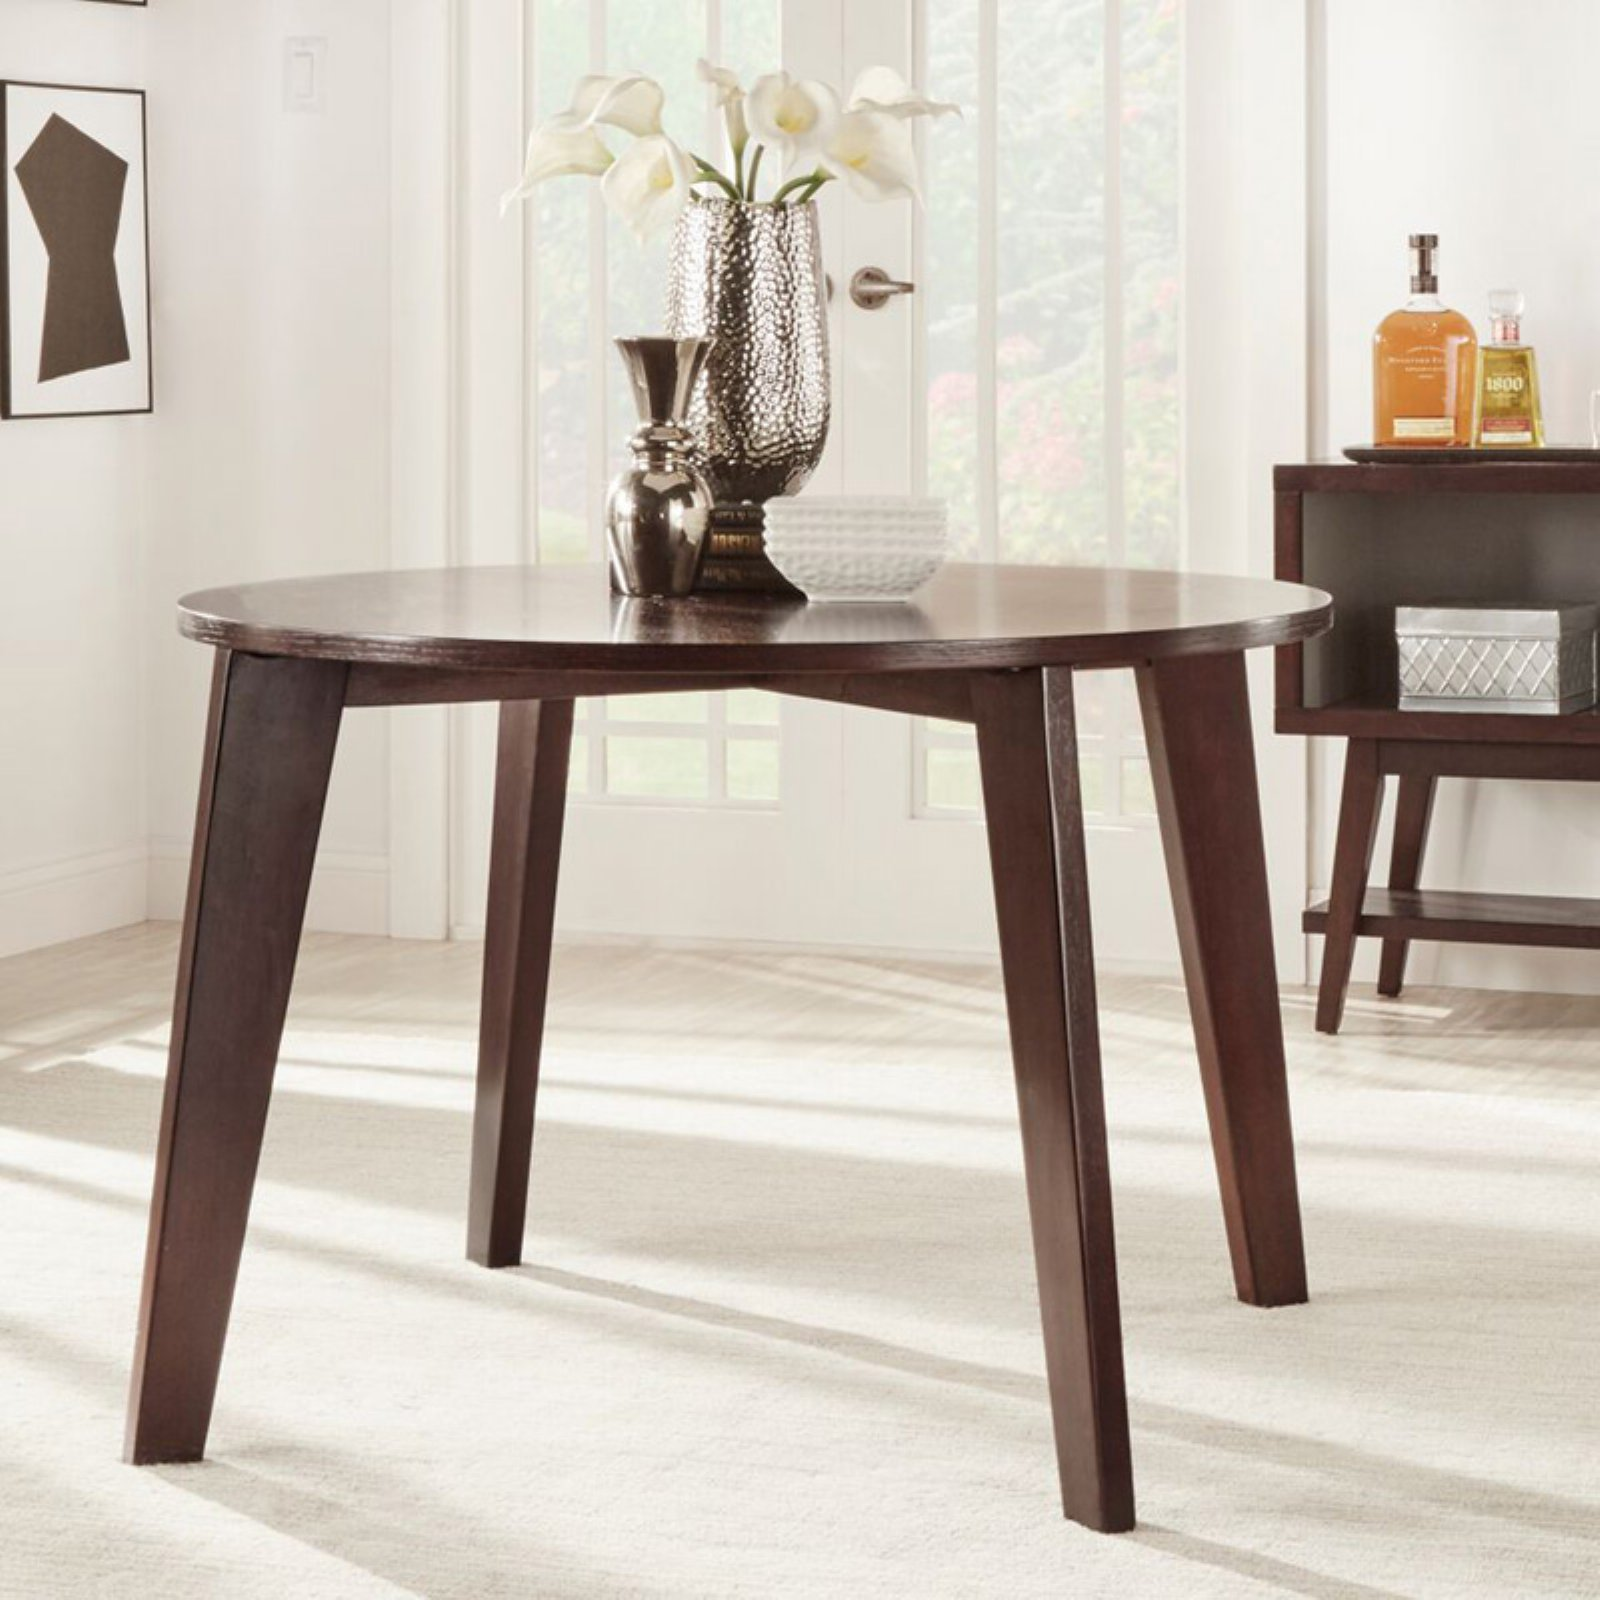 Chelsea Lane Baxter Round Angled-Leg Dining Table